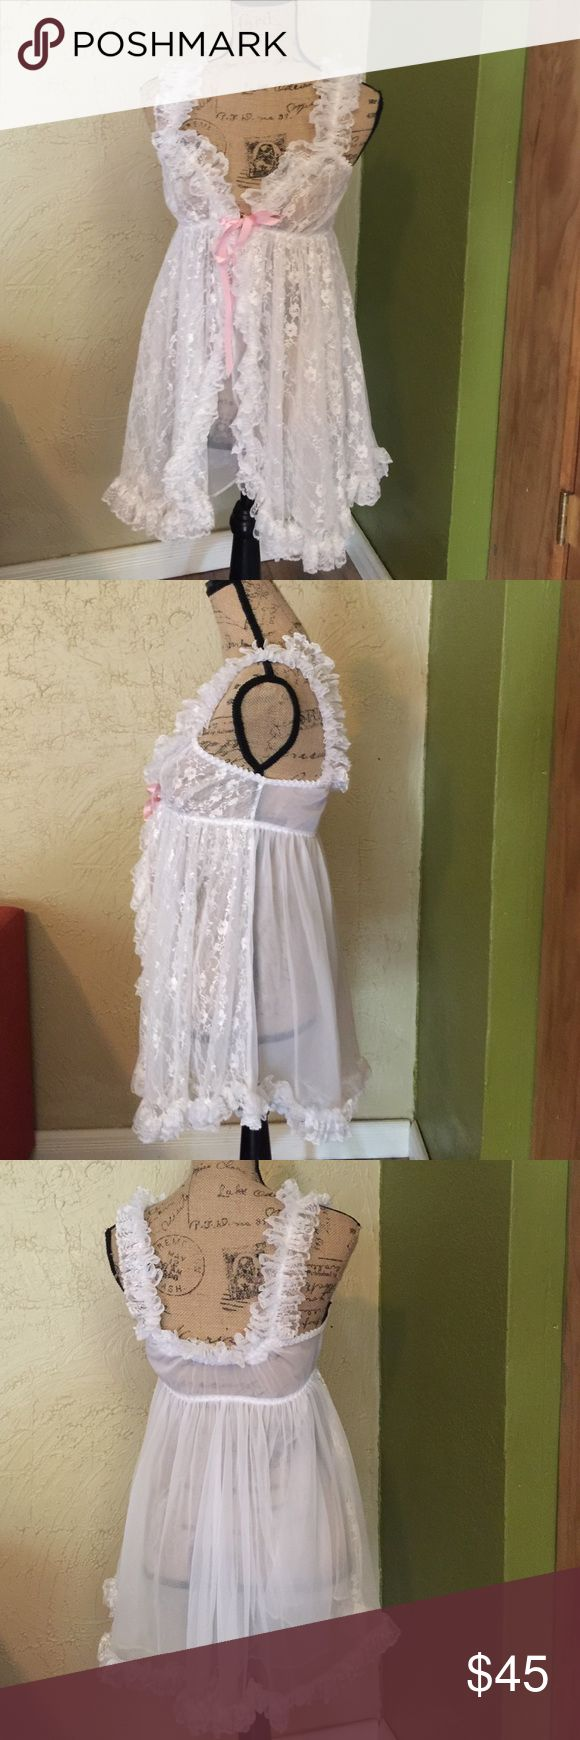 Vintage lace lingerie top Babydoll tank style top , sheer white lace with pink bow. Has a sheer liner built in underneath , gorgeous vintage piece in excellent condition Vintage Intimates & Sleepwear Chemises & Slips